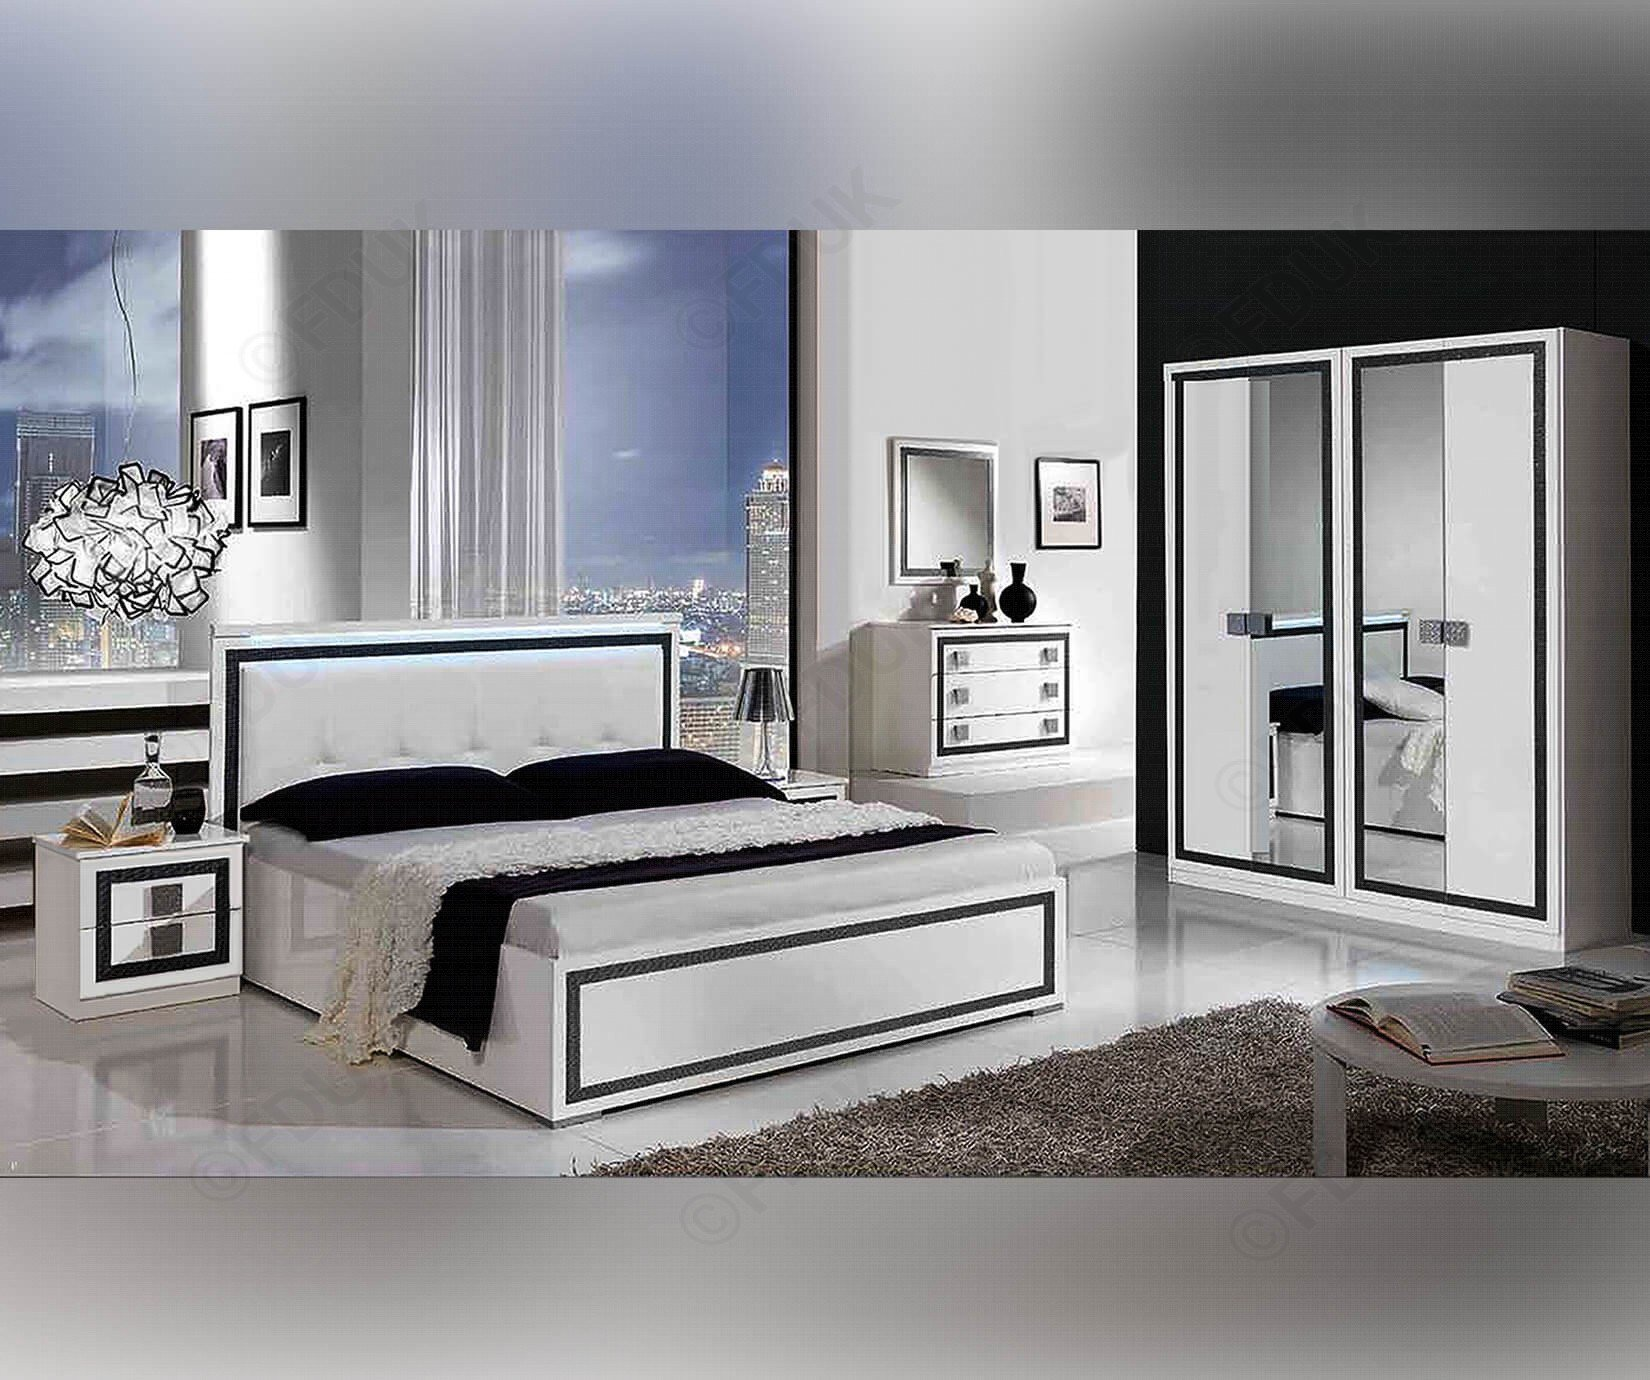 Best Mcs Thema Thema White Finish Italian Bedroom Set Furnituredirectuk Net With Pictures